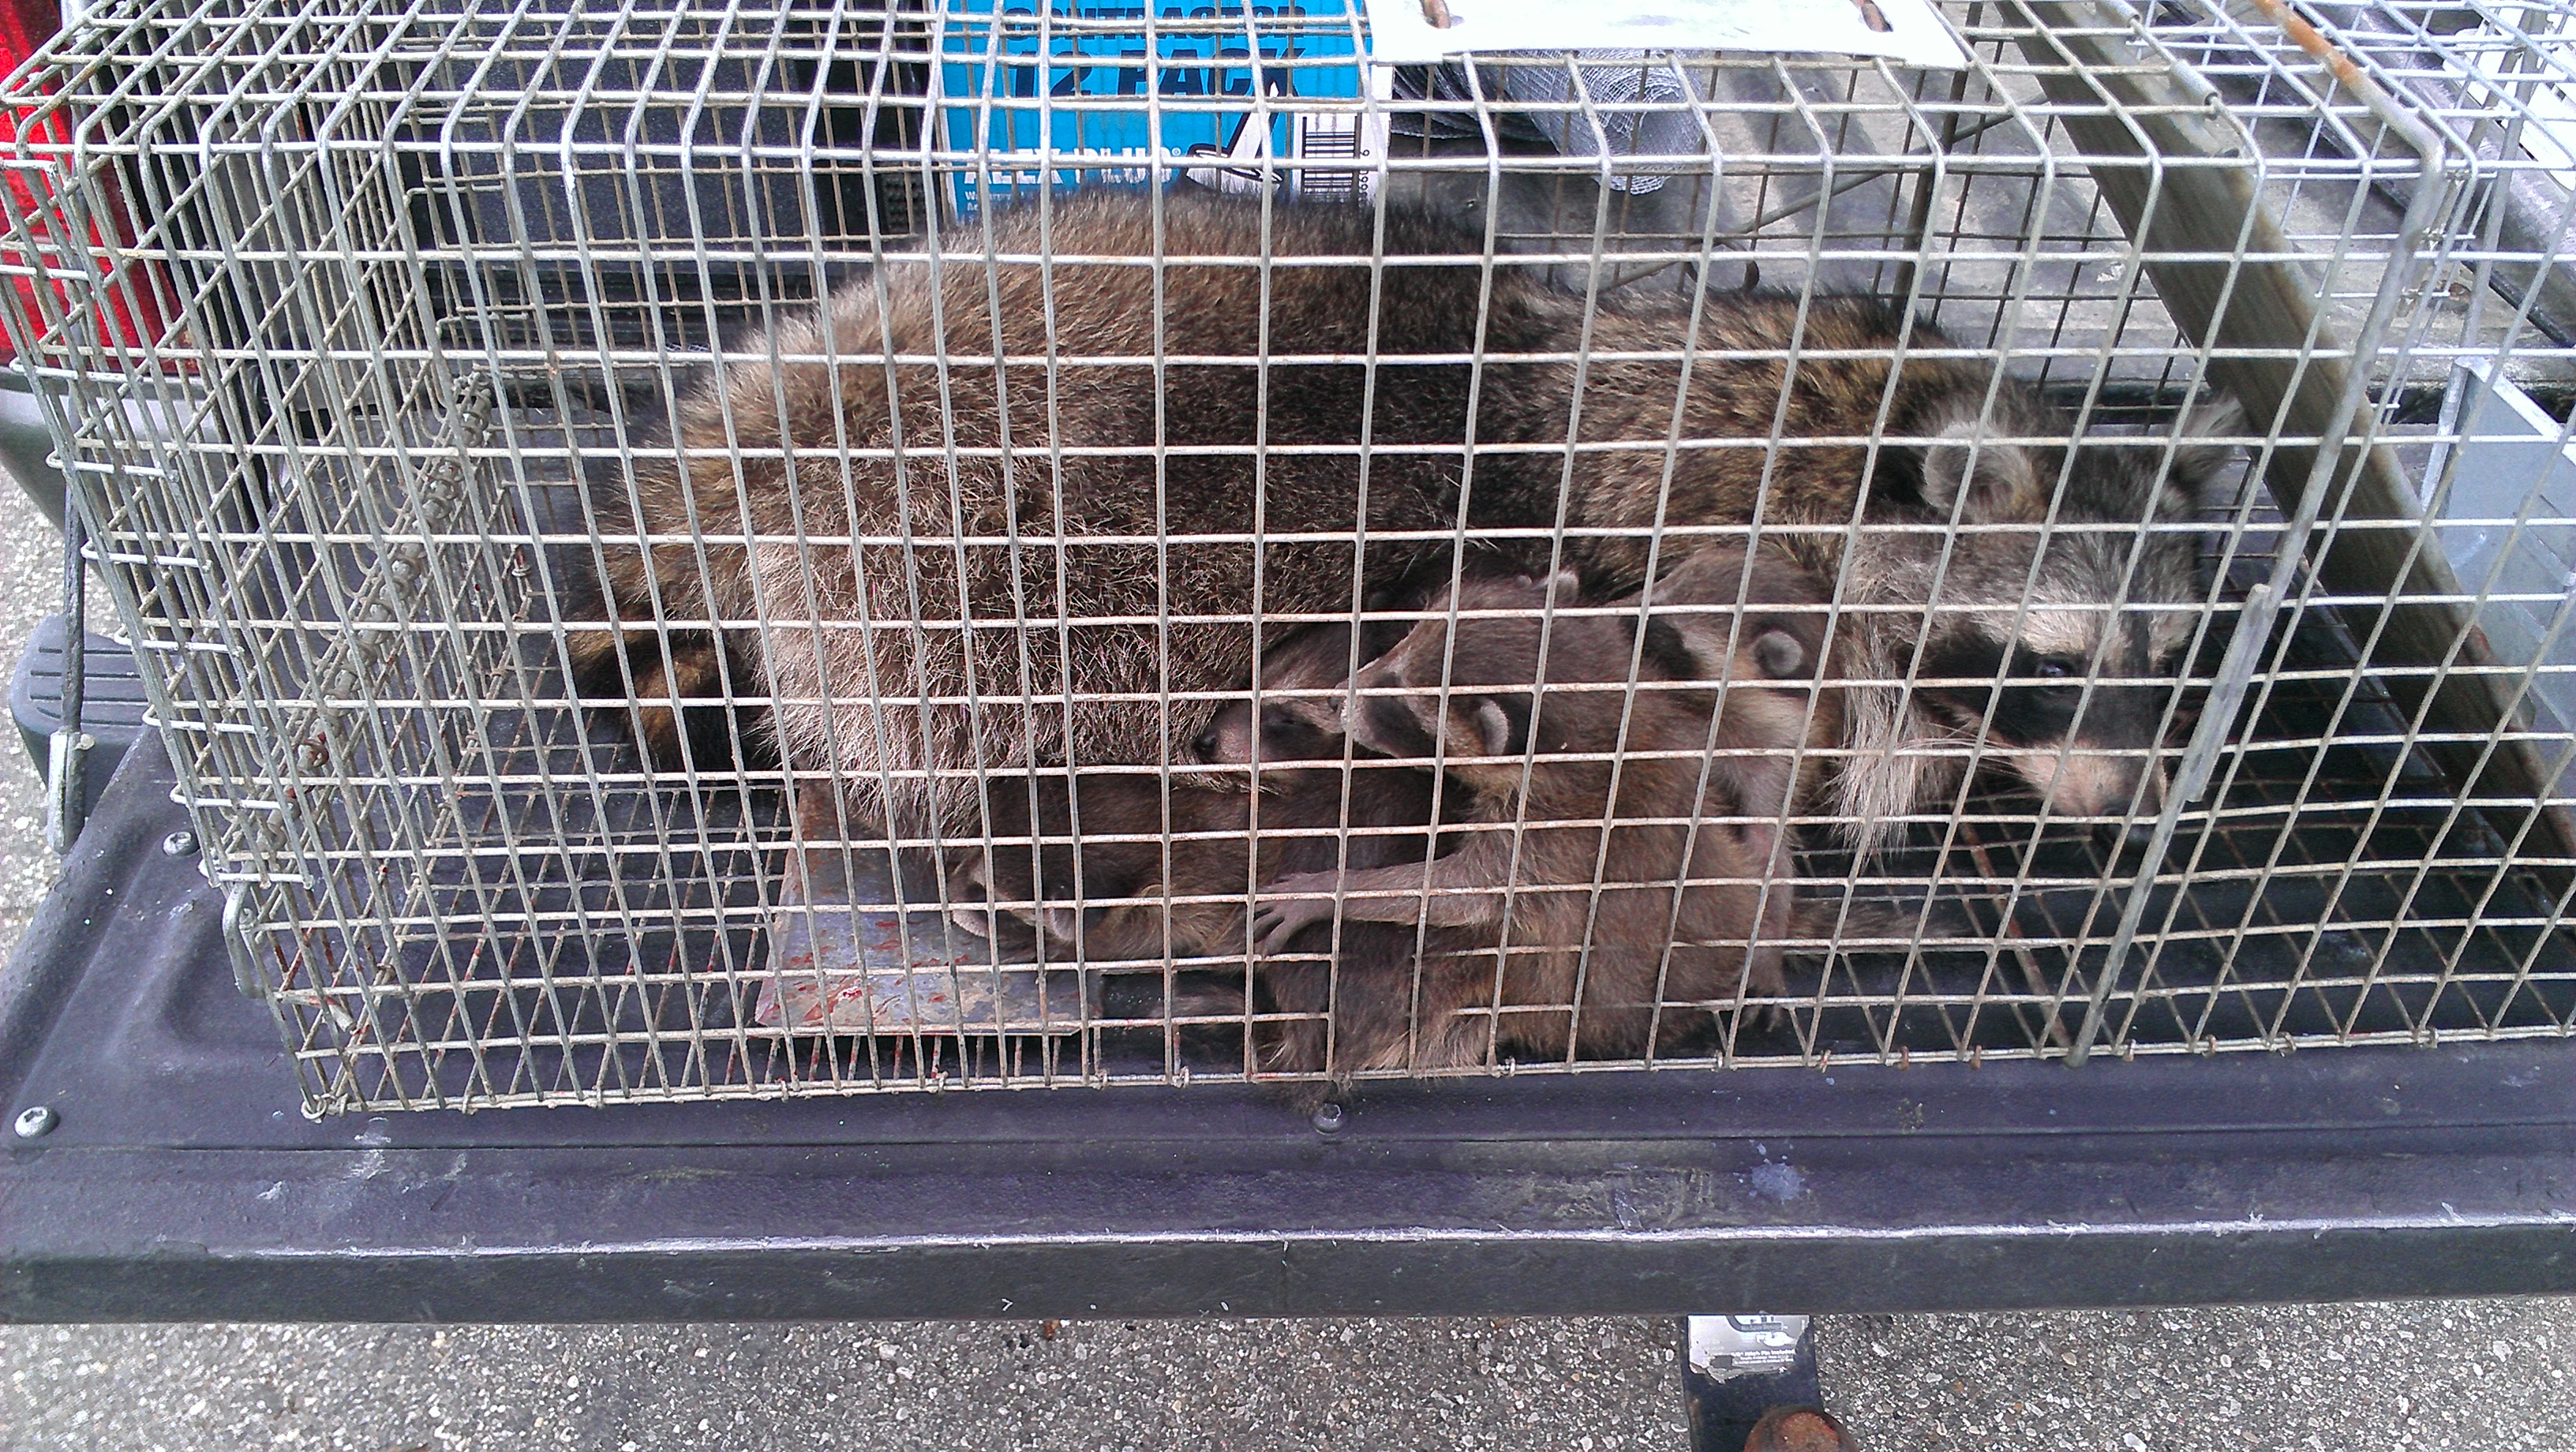 raccoons and babies in a trap